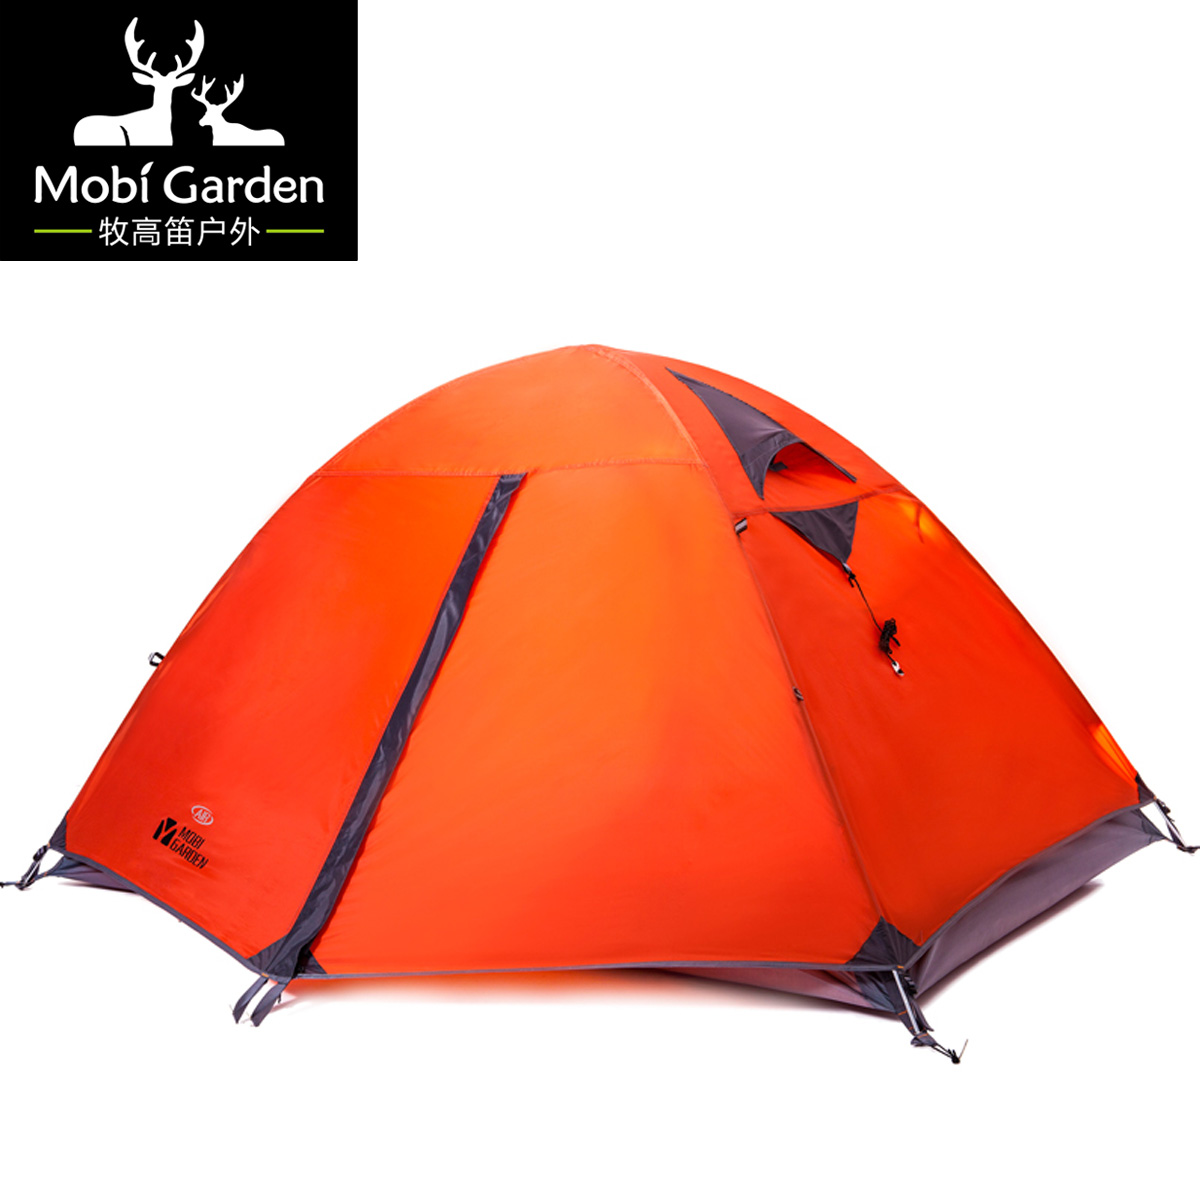 Professional mountaineering tent  hiking windproof double layer aluminum breathable camping tent 2air high quality outdoor 2 person camping tent double layer aluminum rod ultralight tent with snow skirt oneroad windsnow 2 plus